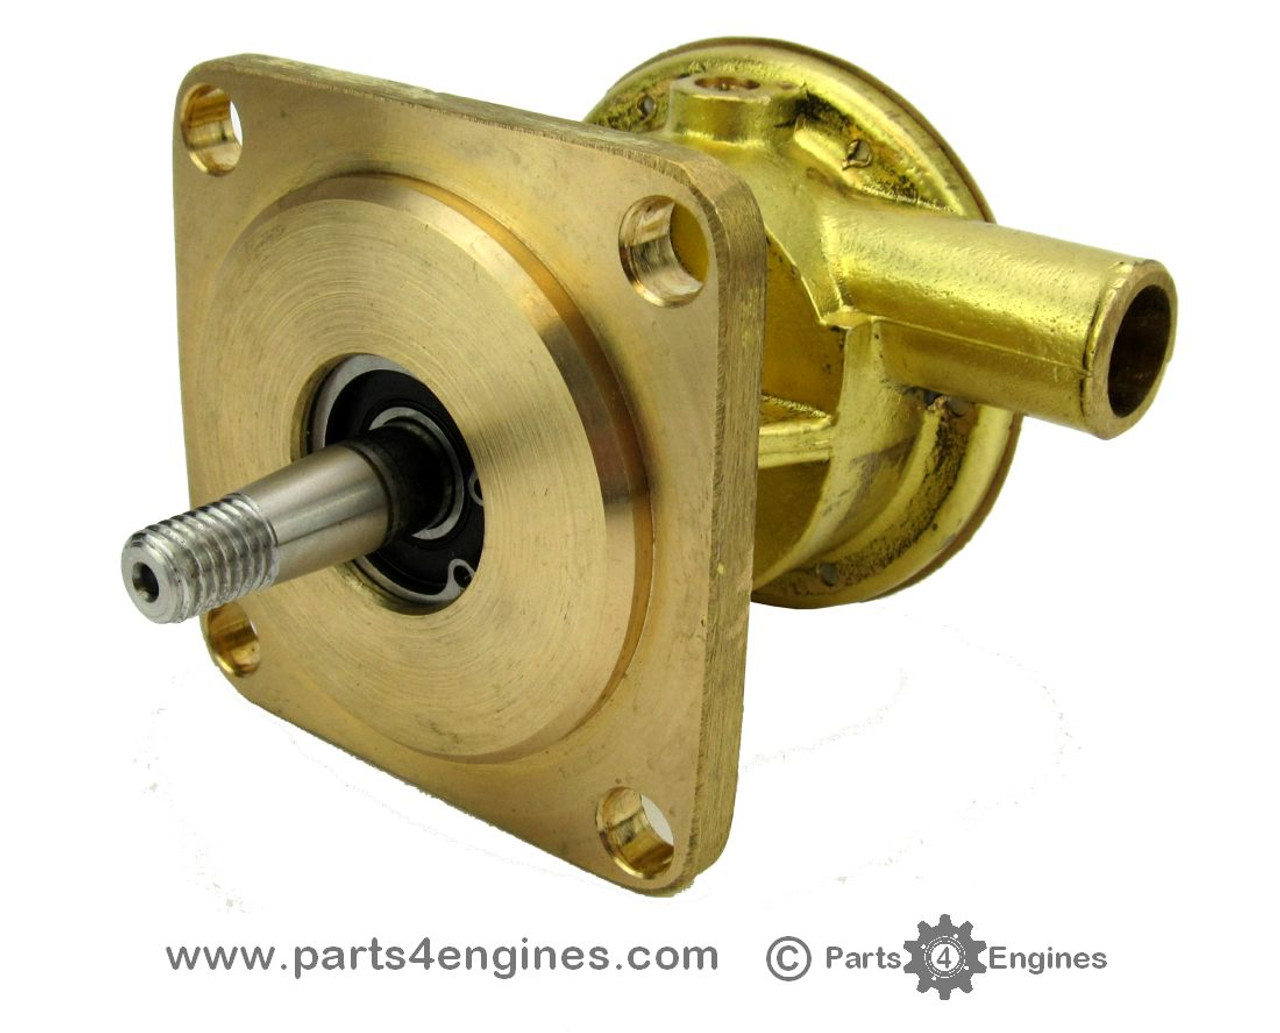 Volvo Penta MD2040 raw water pump from parts4engines.com